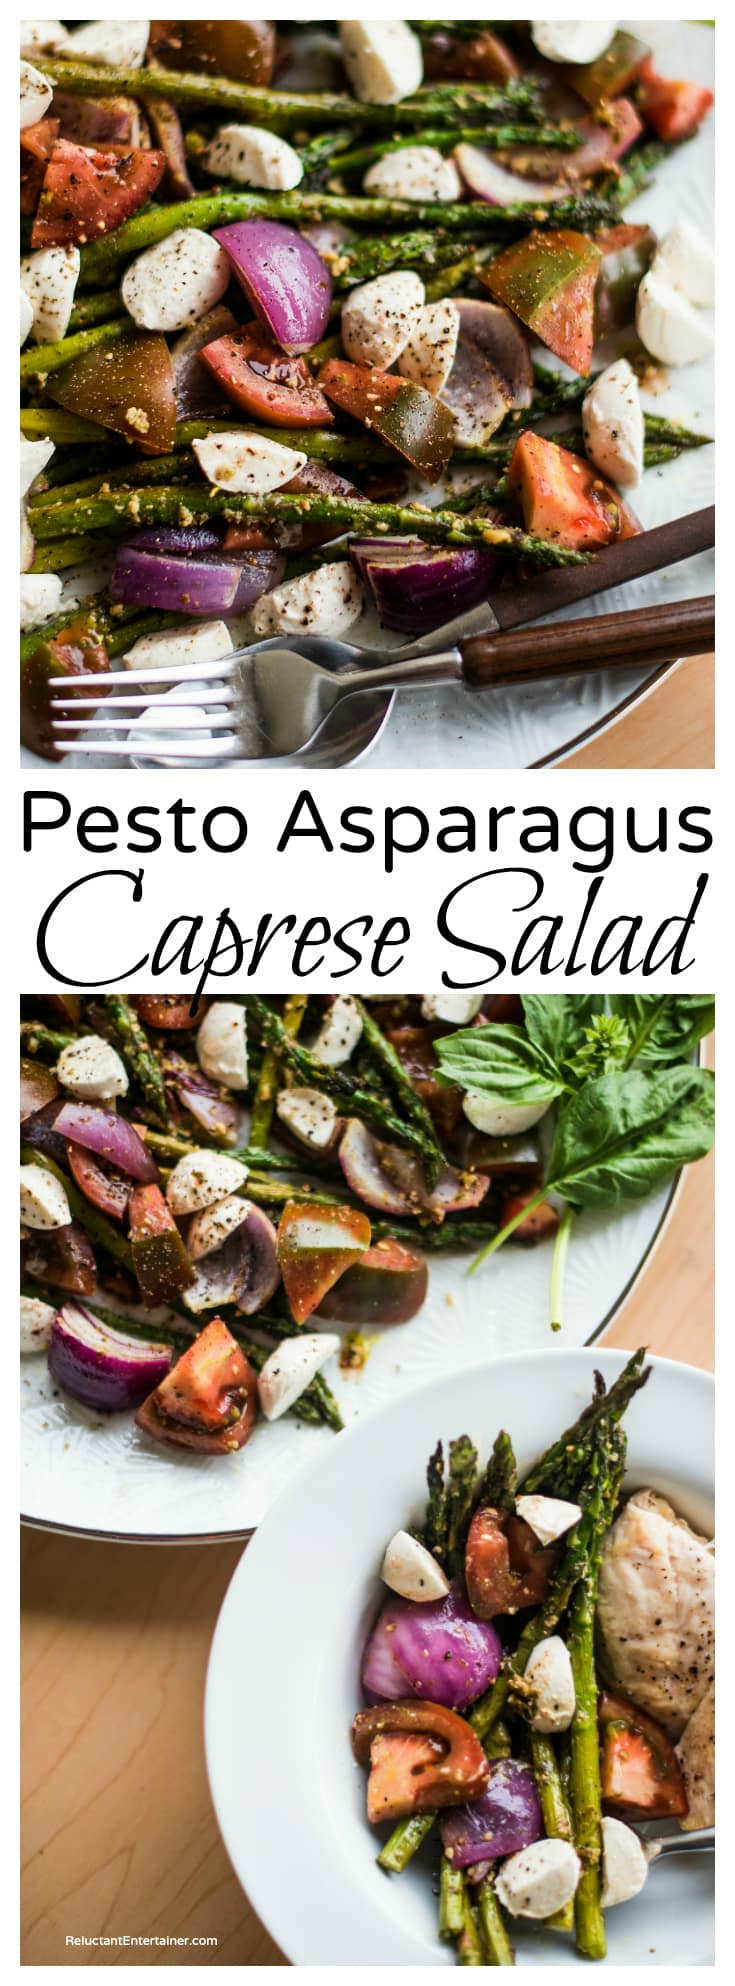 Pesto Asparagus Caprese Salad Recipe